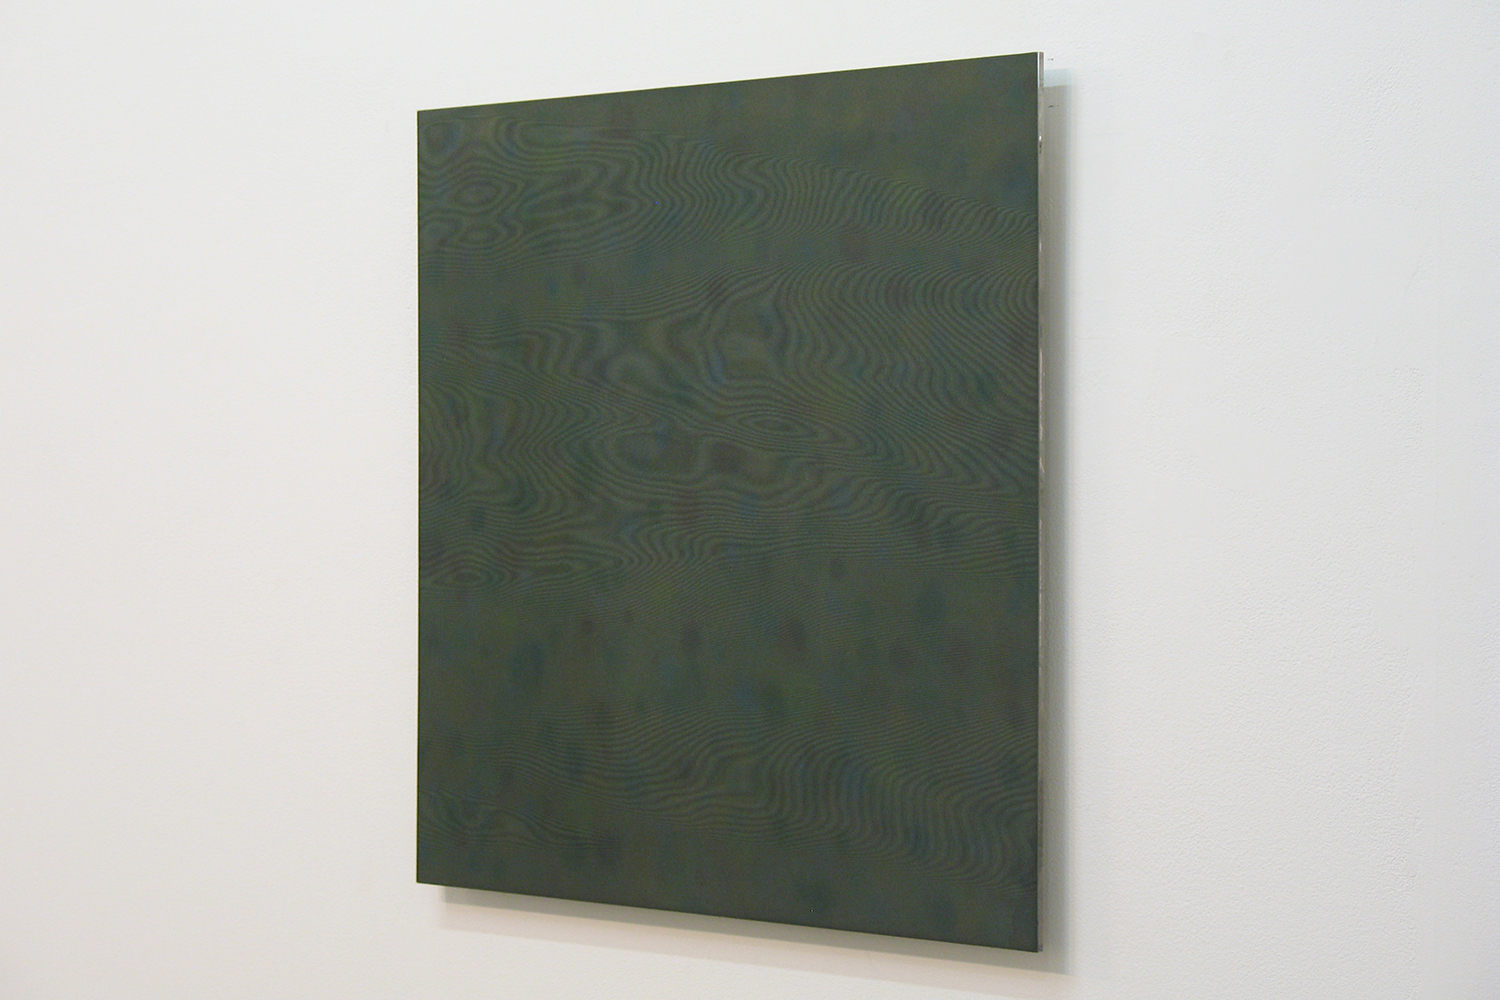 Untitled GY|Acrylic board, stainless steel sheet, glass organdy, acrylic paint|60 x 60 cm|2011